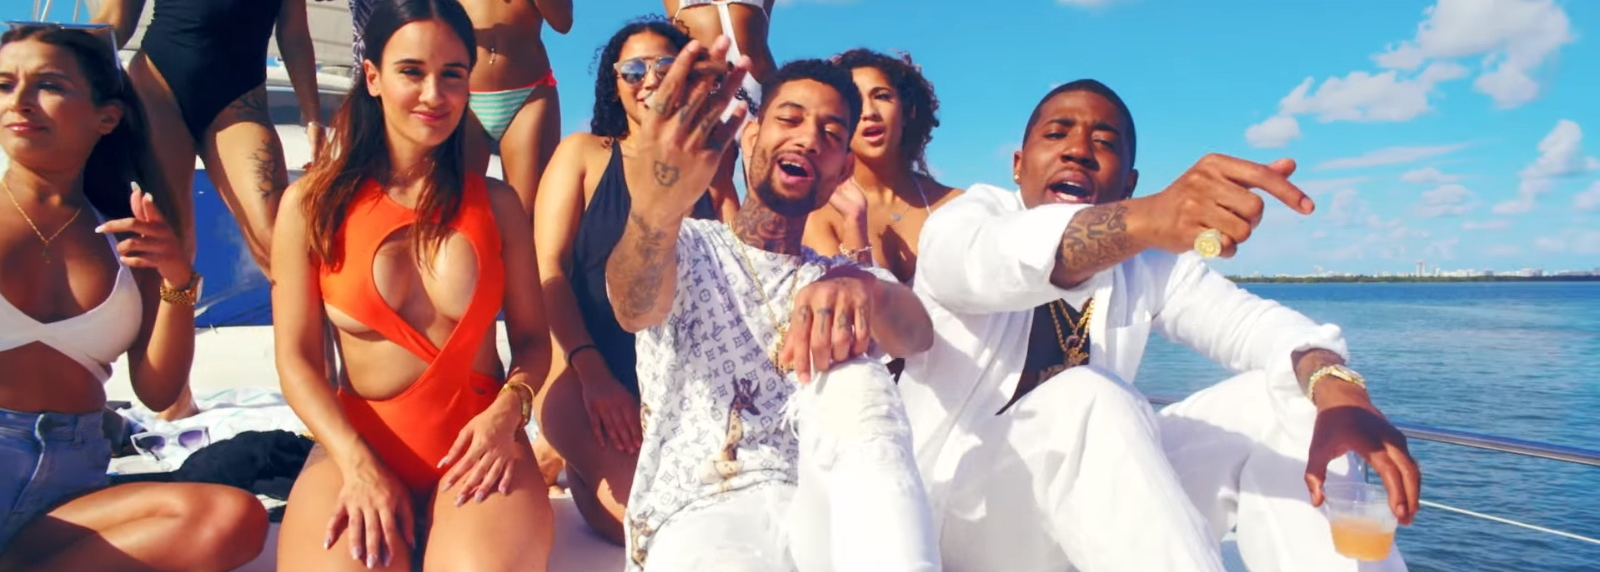 LV Tee - YFN Lucci - Everyday We Lit Official Music Video Product Placement